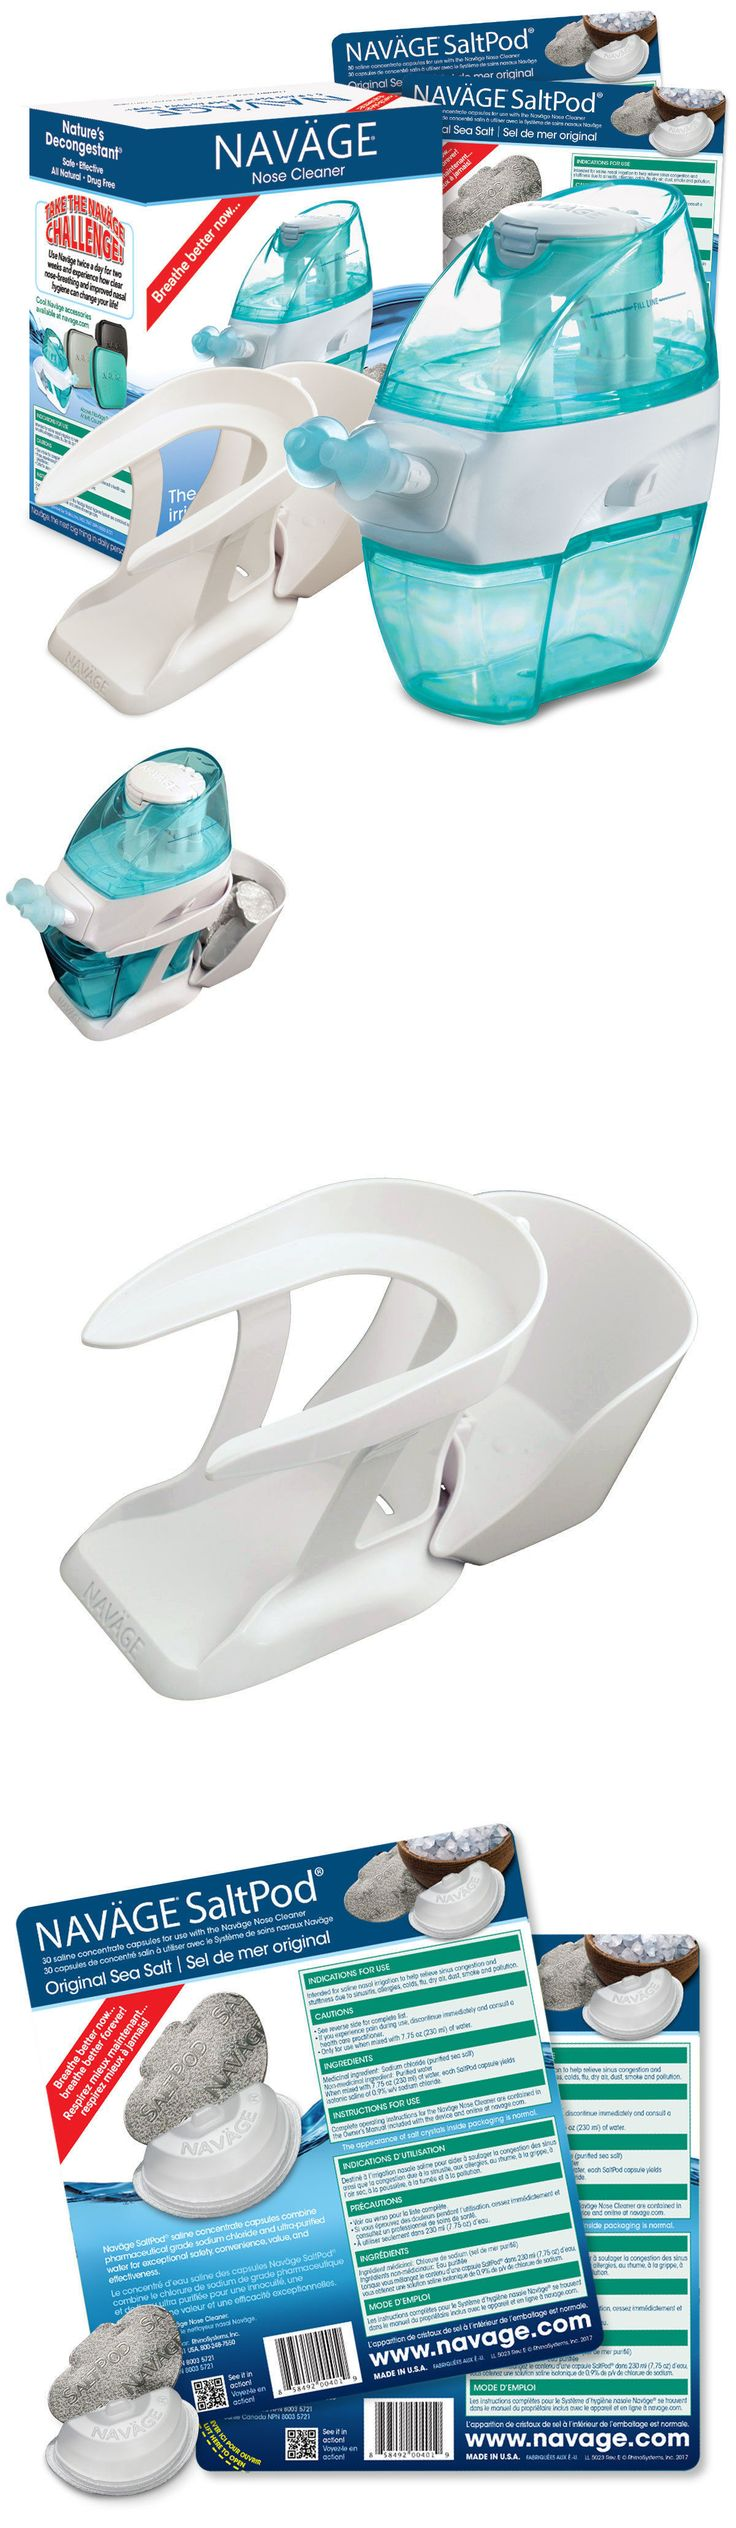 Neti Pots and Cleansers: Navage Nasal Irrigation Bundle: Nose Cleaner And 40 Saltpods -> BUY IT NOW ONLY: $76.99 on eBay!